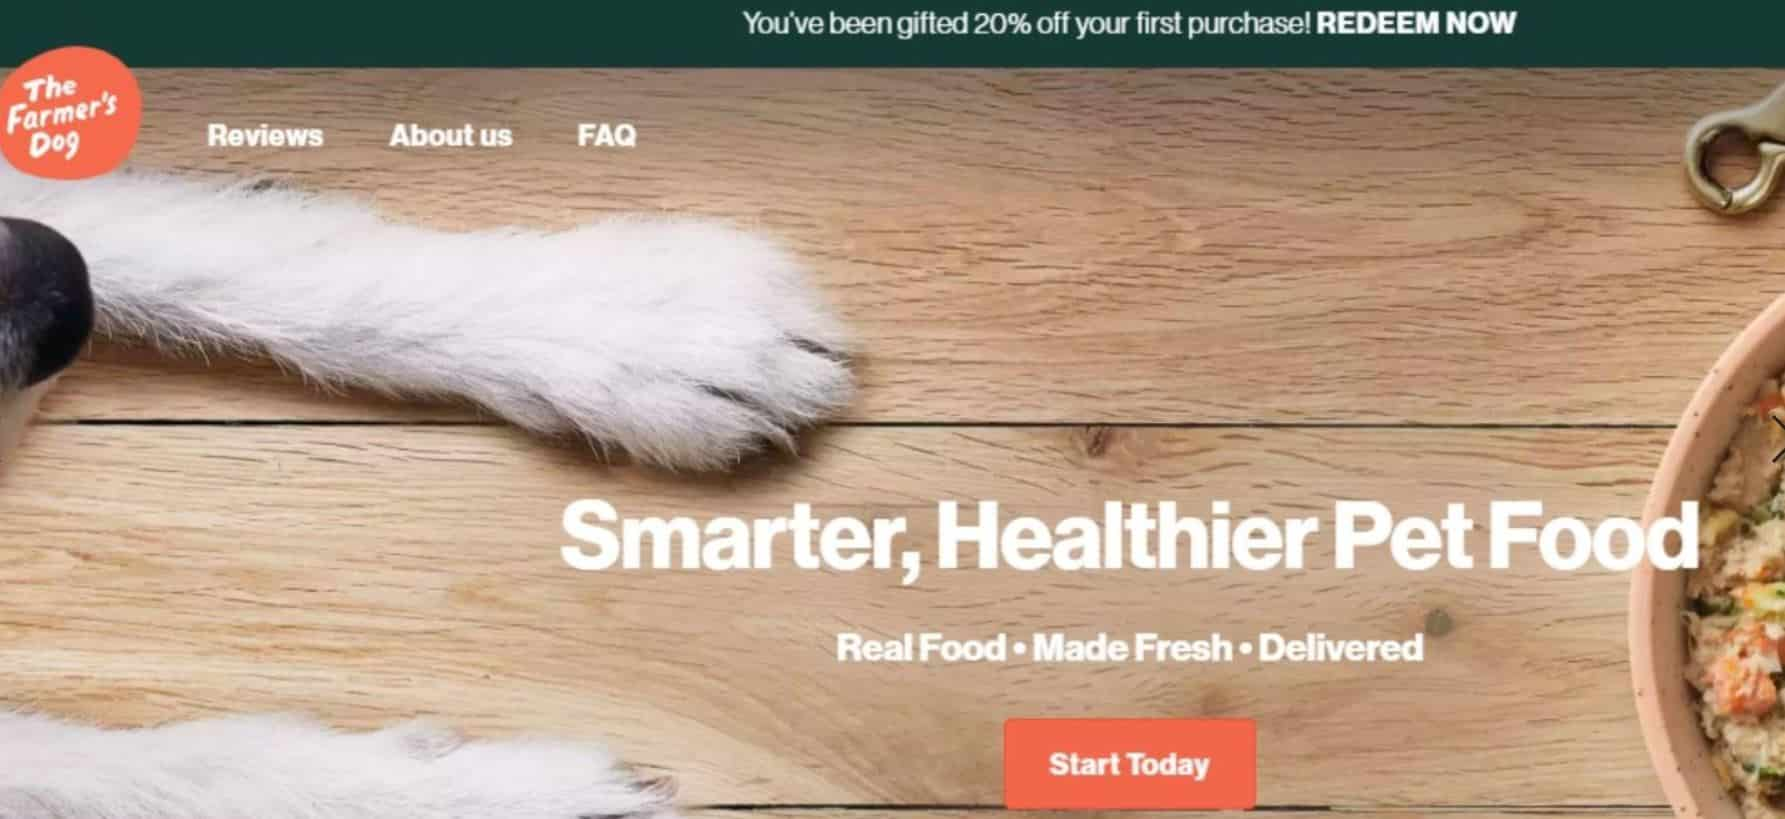 Farmer's Dog is the 2nd best pet food delivery option